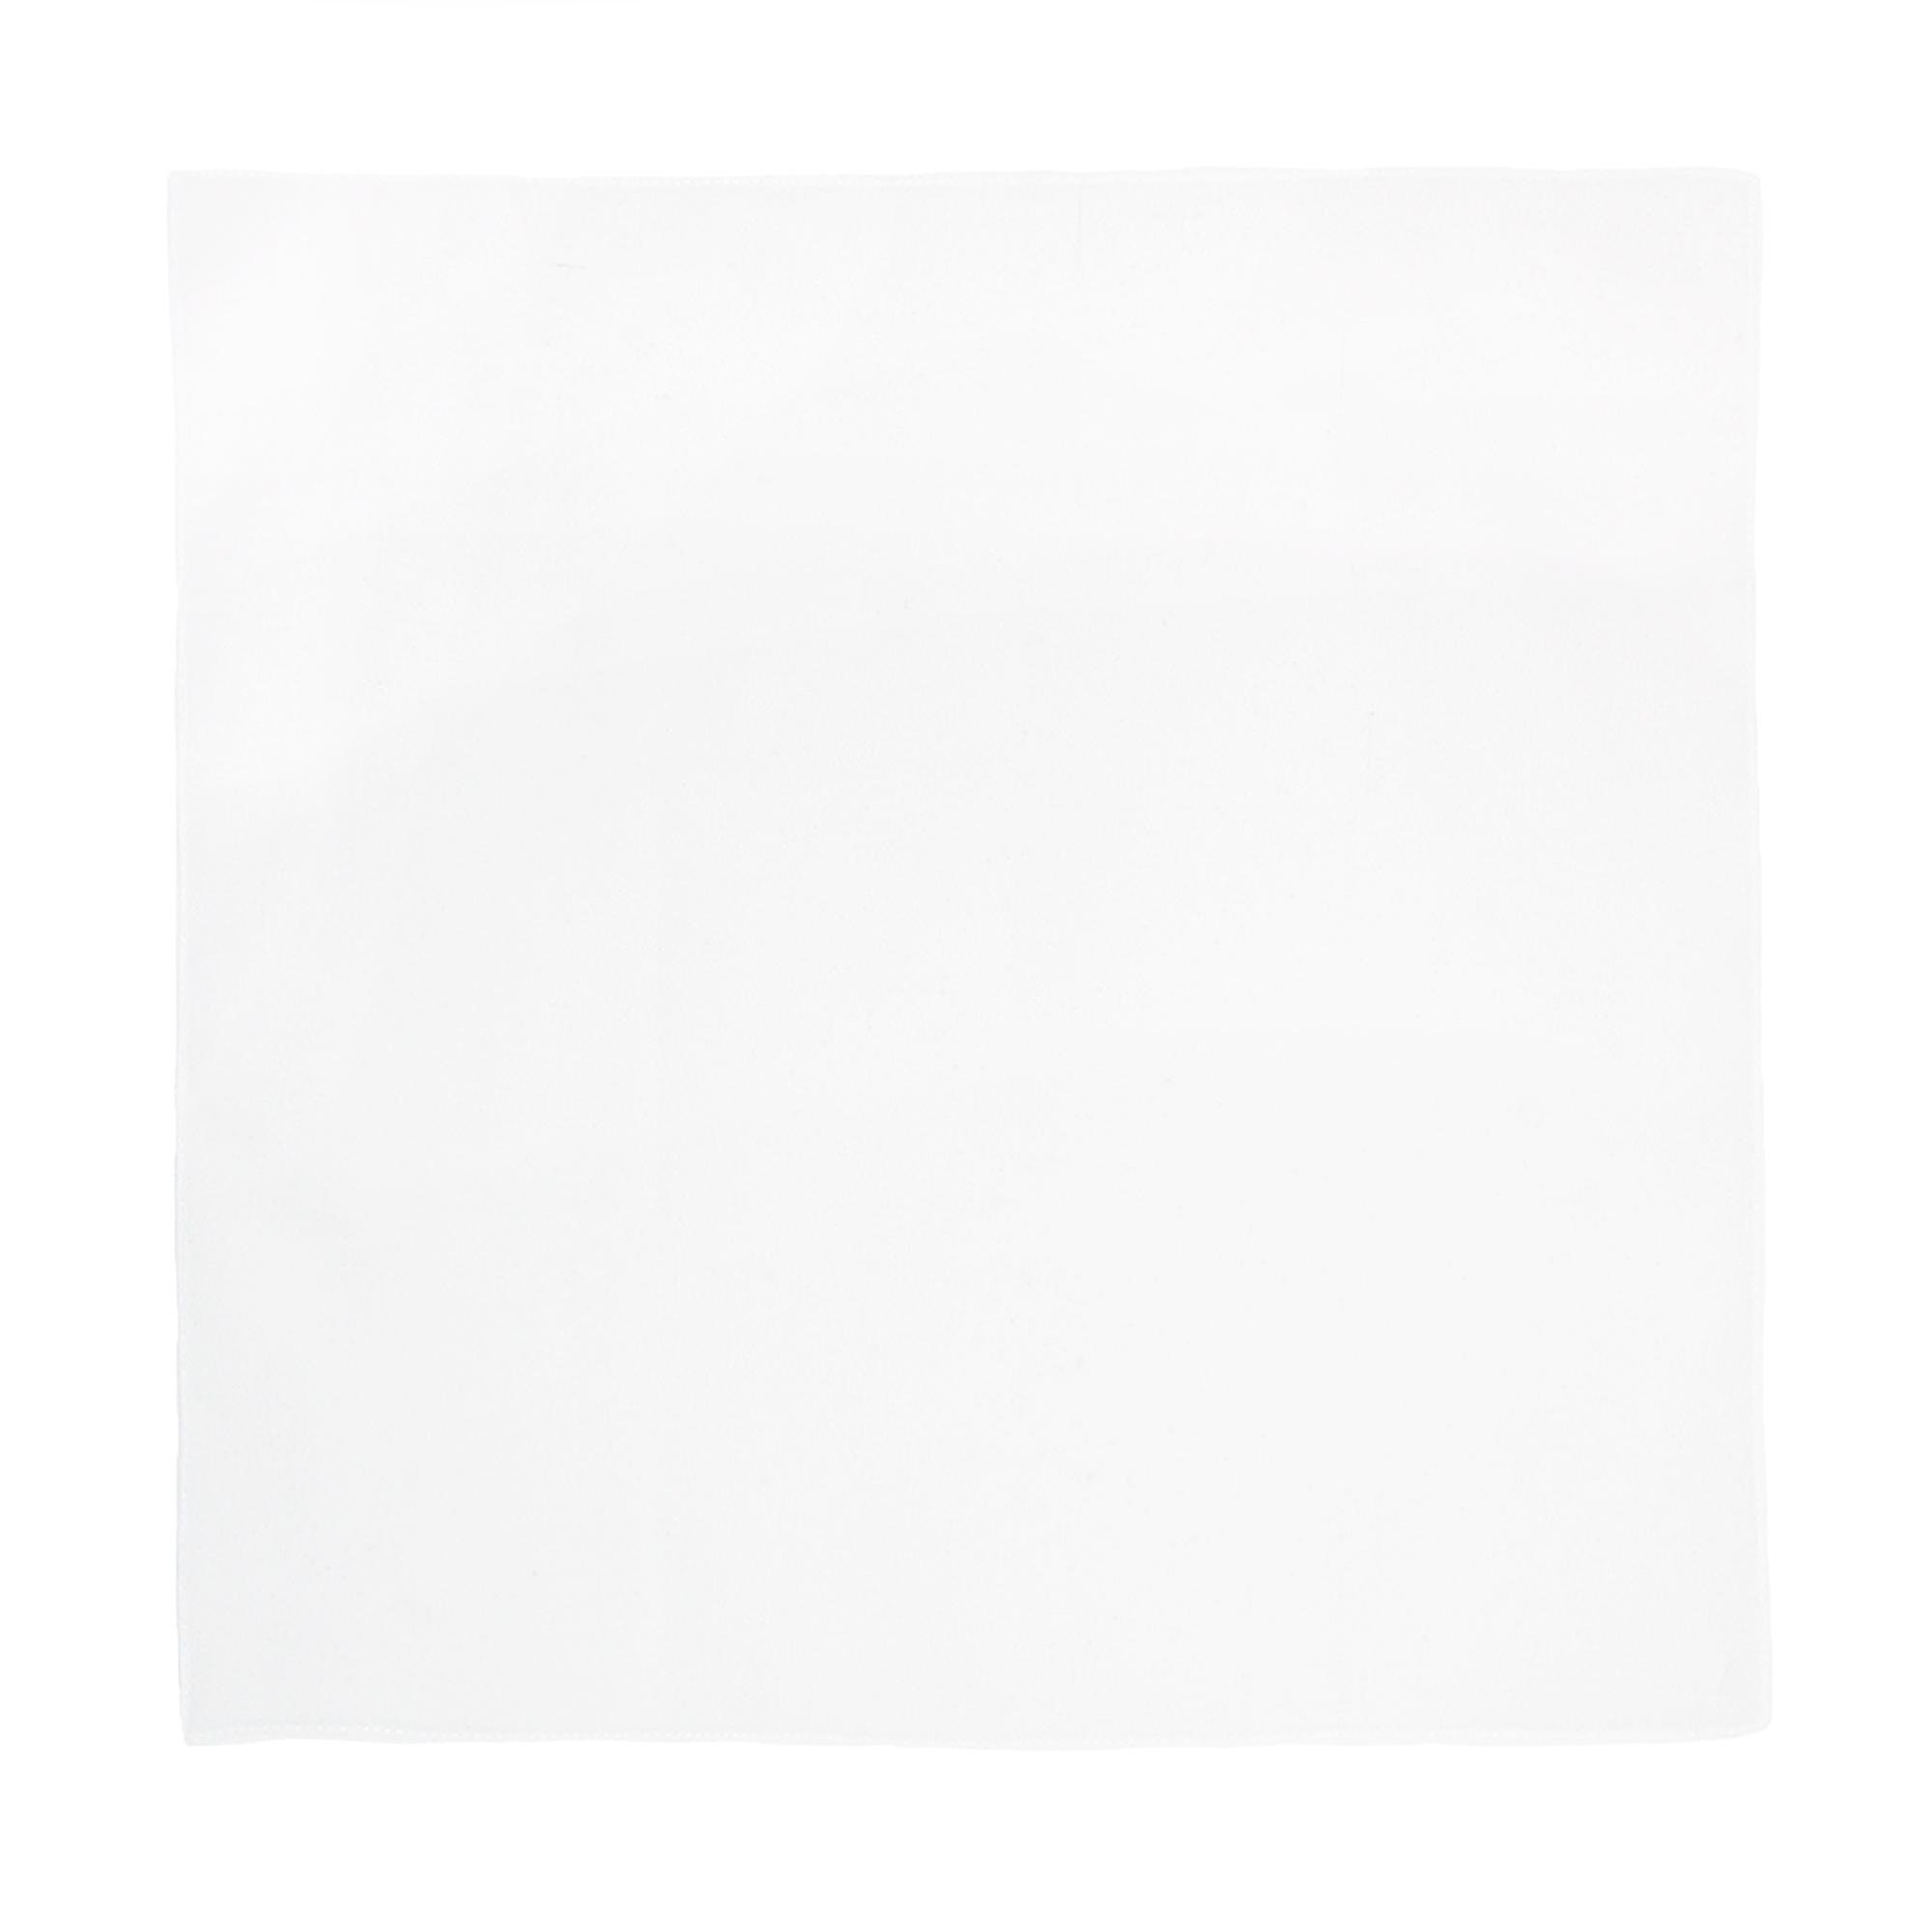 Axxents Unisex Cotton White Handkerchiefs (Pack of 12), White by Axxents (Image #2)